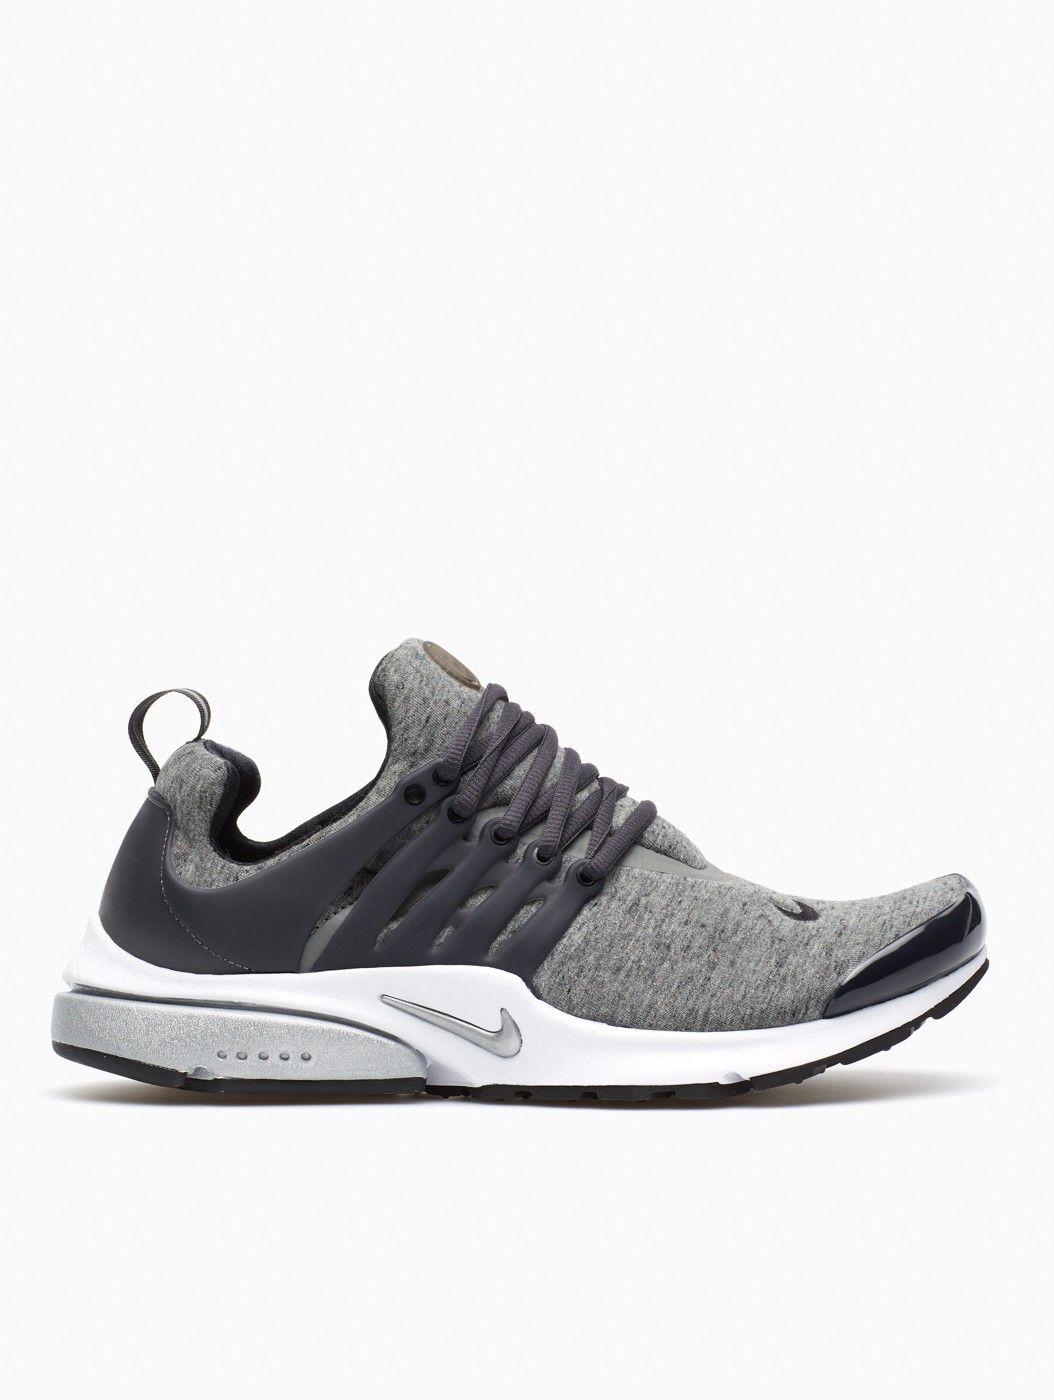 3110c5761a5 Nike Air Presto TP QS from quick strike collection